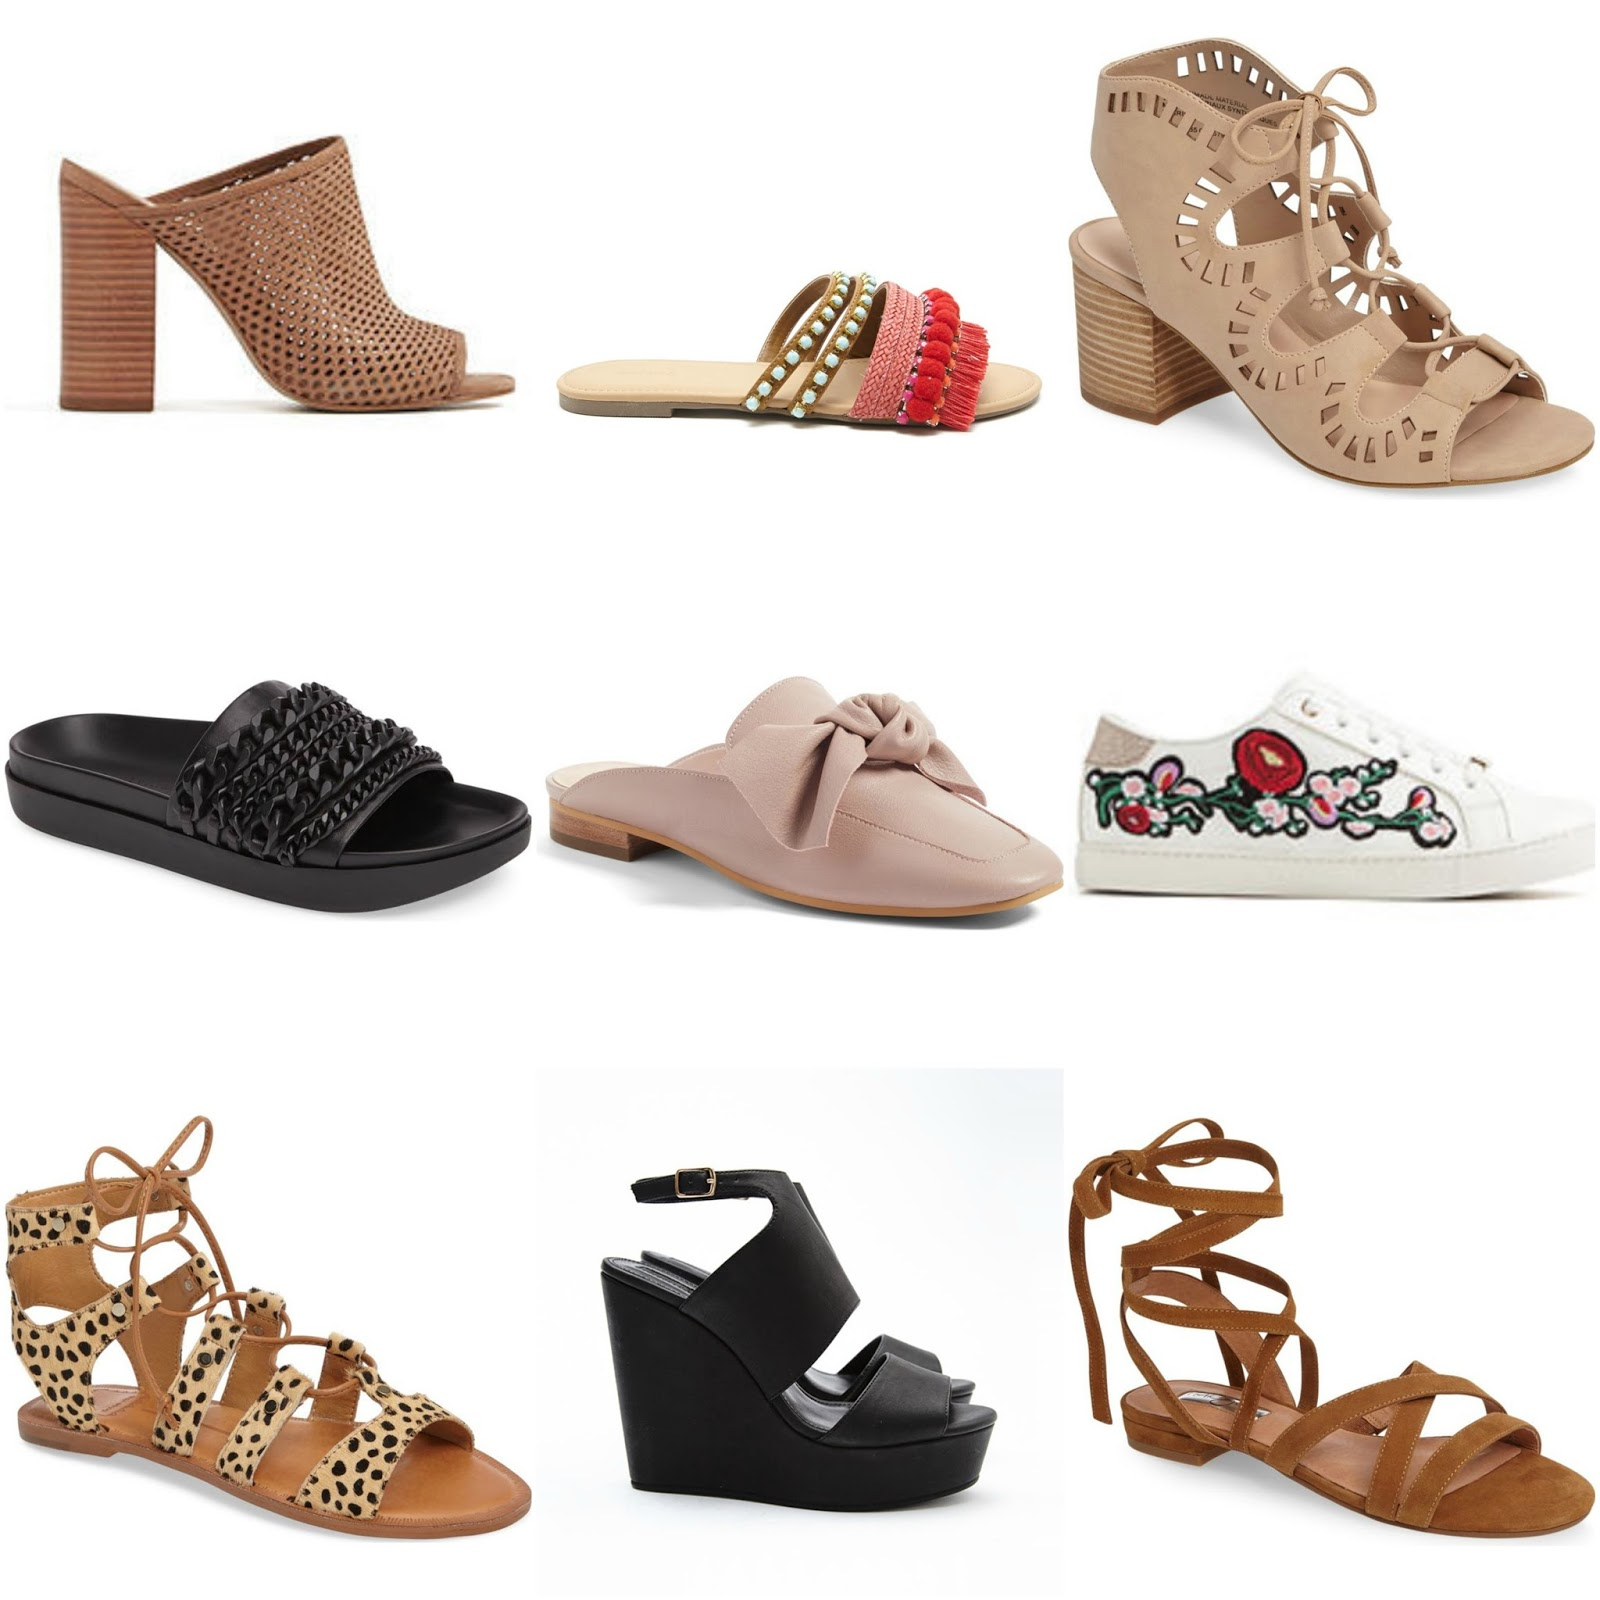 The spring best shoes catalog photo